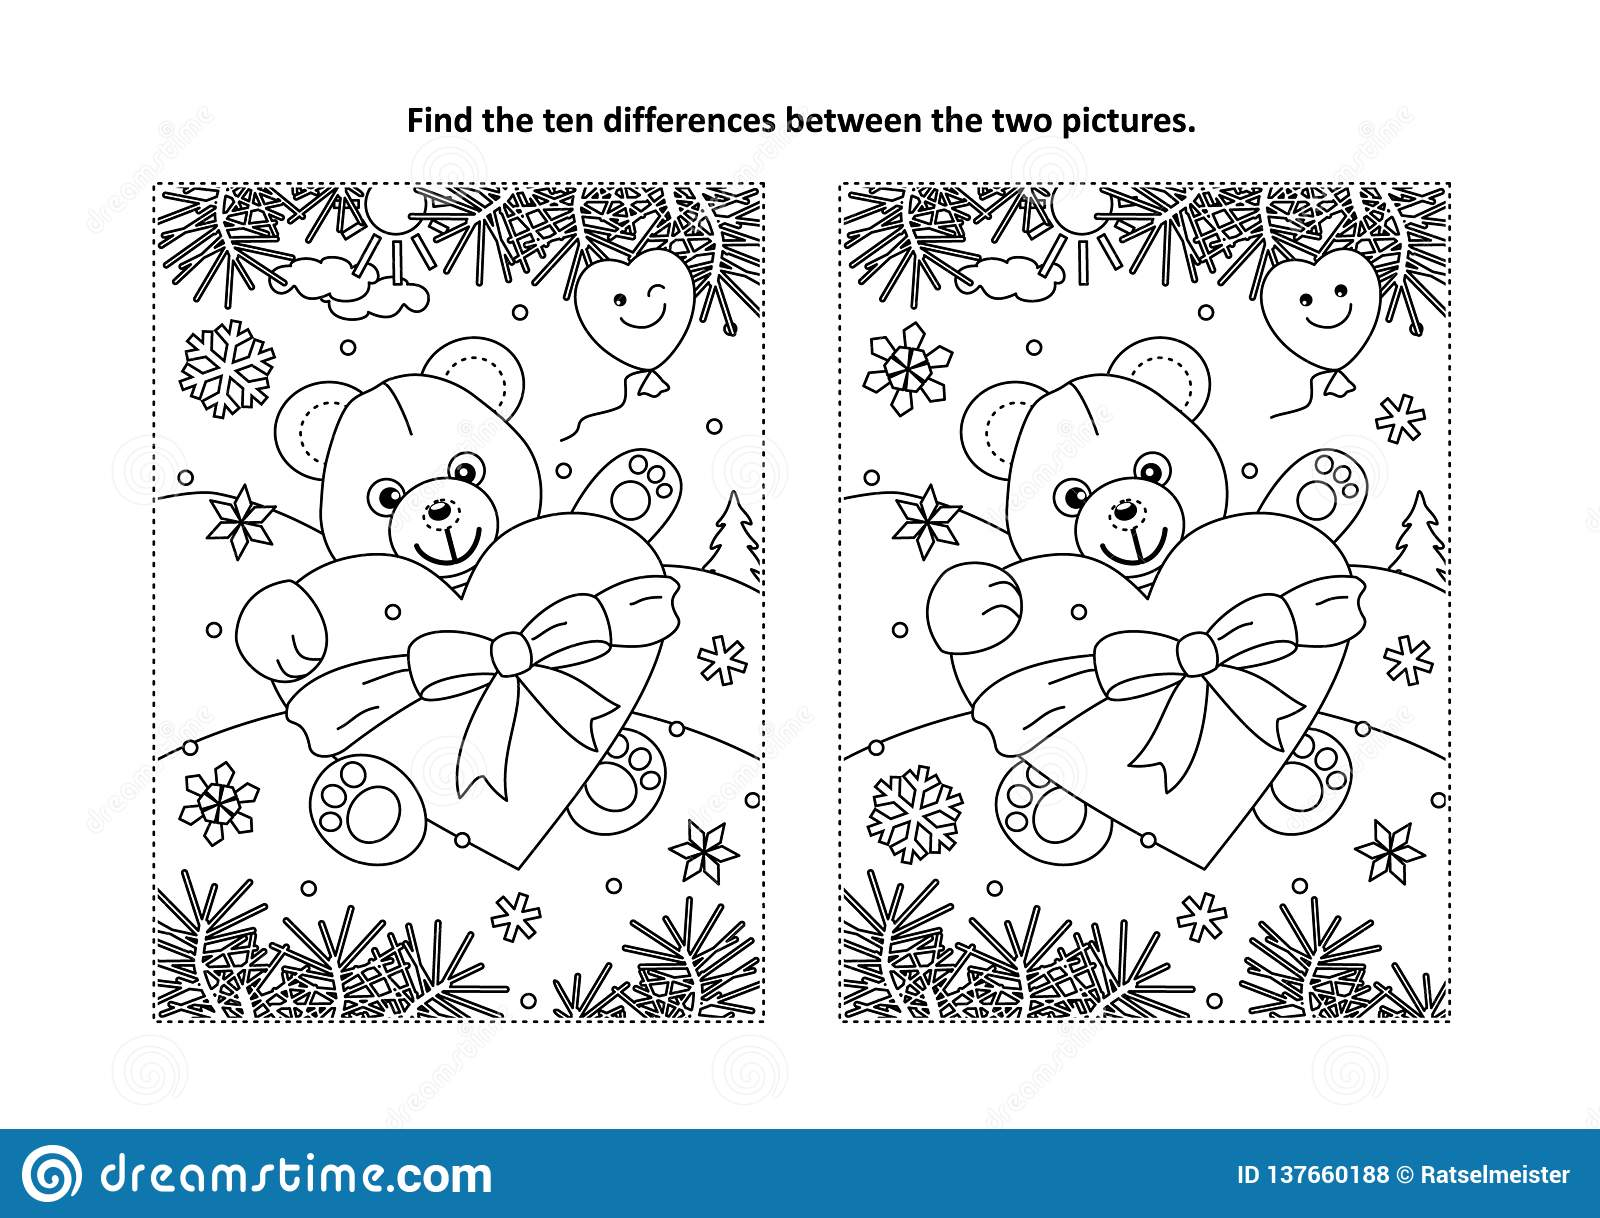 Valentines day find the differences visual puzzle and coloring page